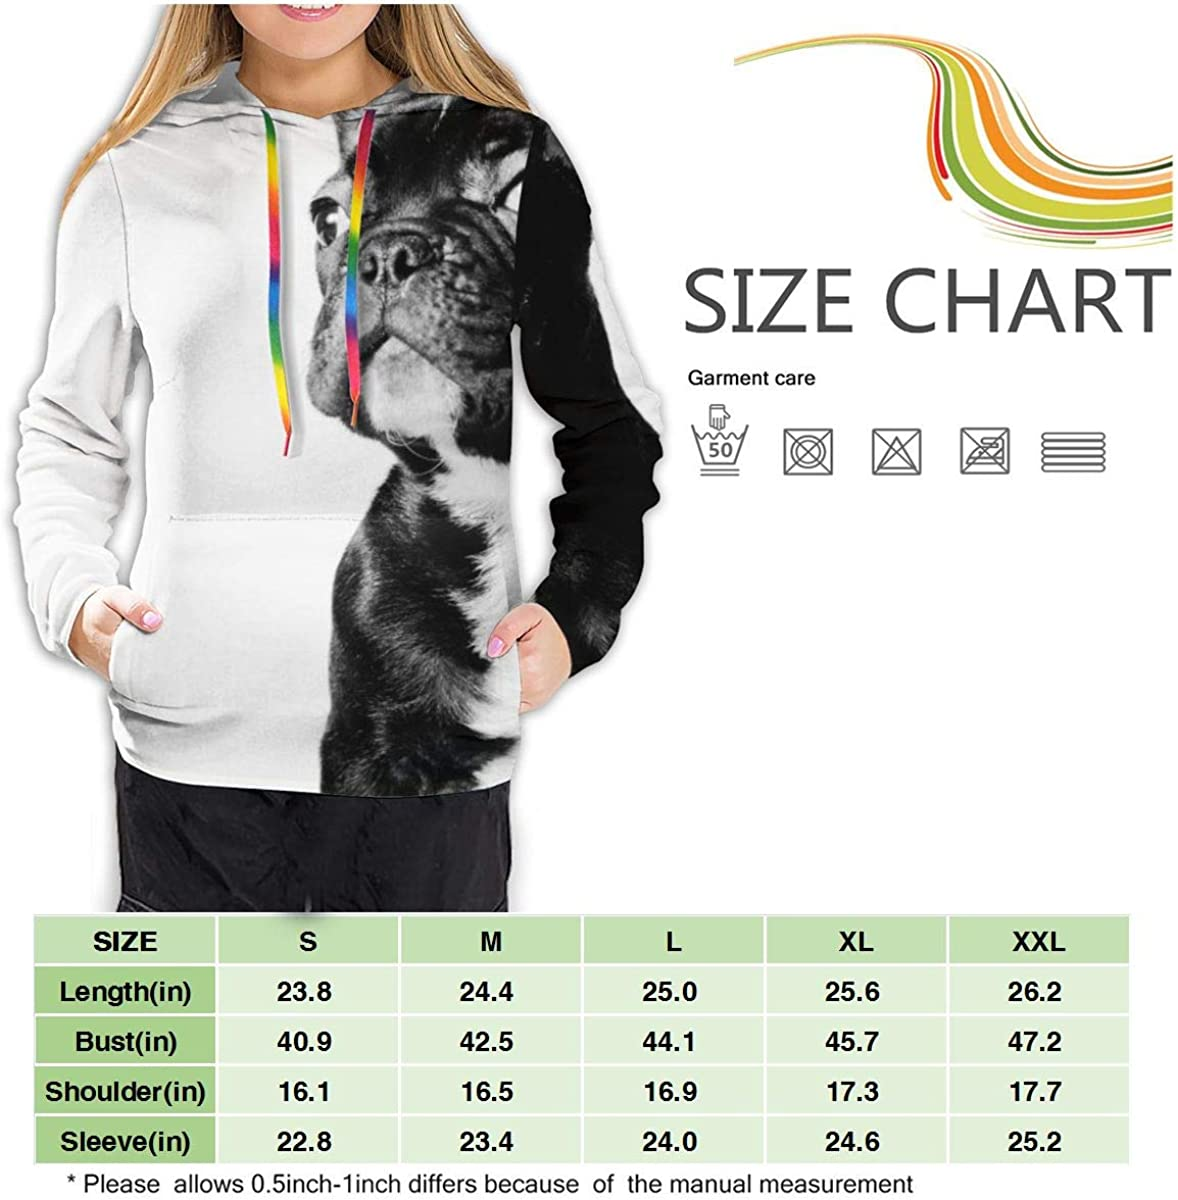 YongColer Pullover Hooded Sweatshirts for Women Girls Ladies Funny Cool Outwear